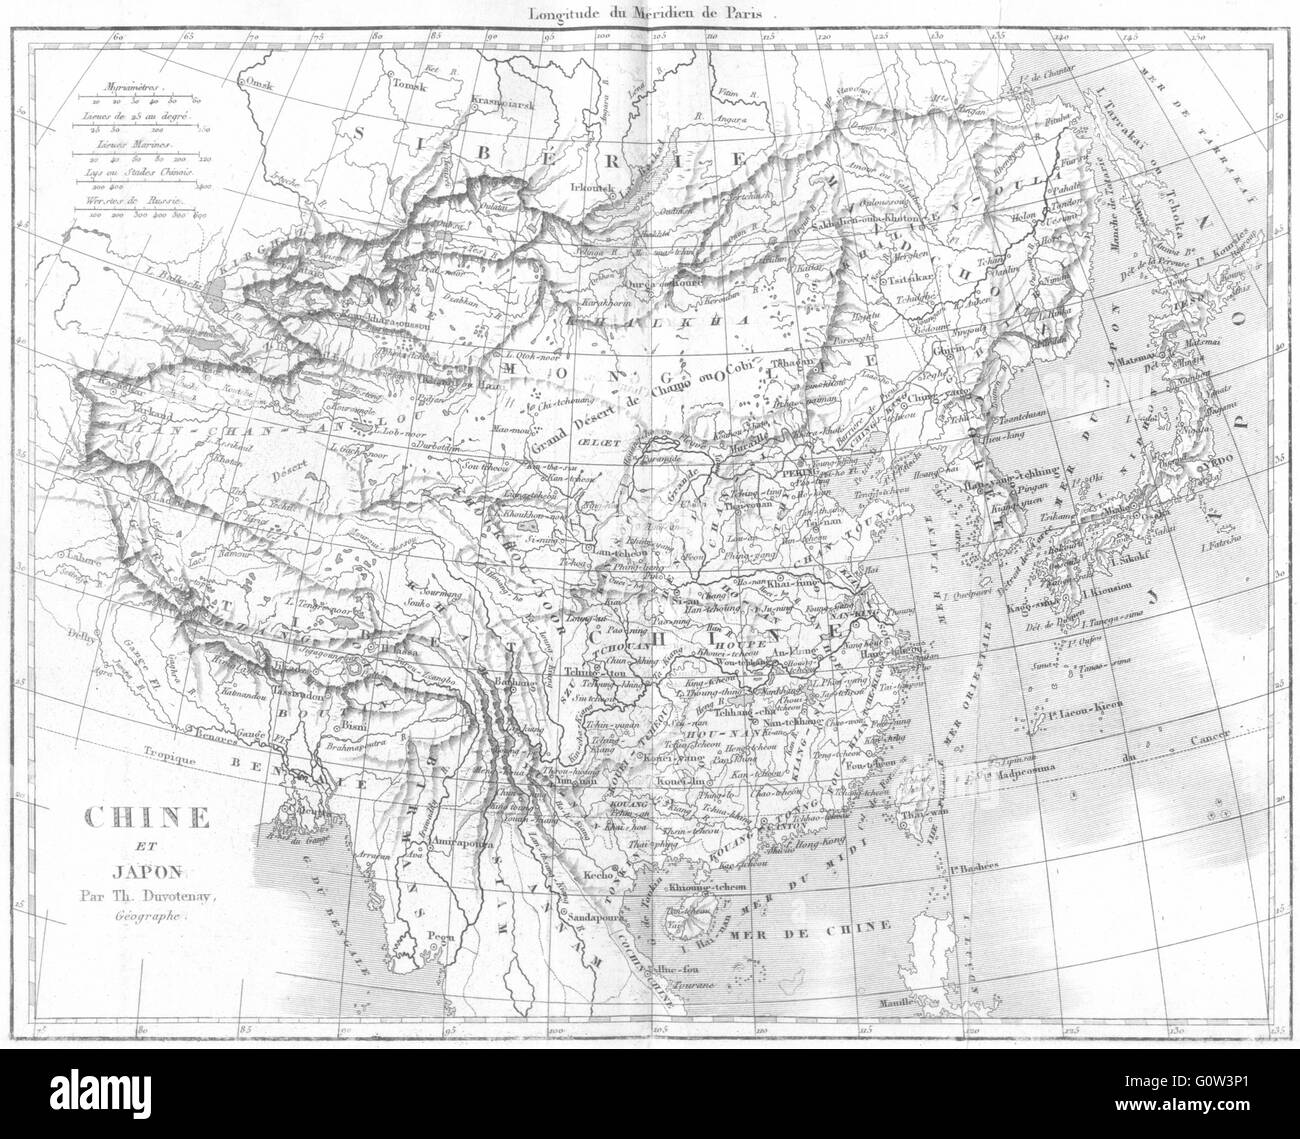 CHINA: Asie: Chine et Japon Japan, 1875 antique map - Stock Image